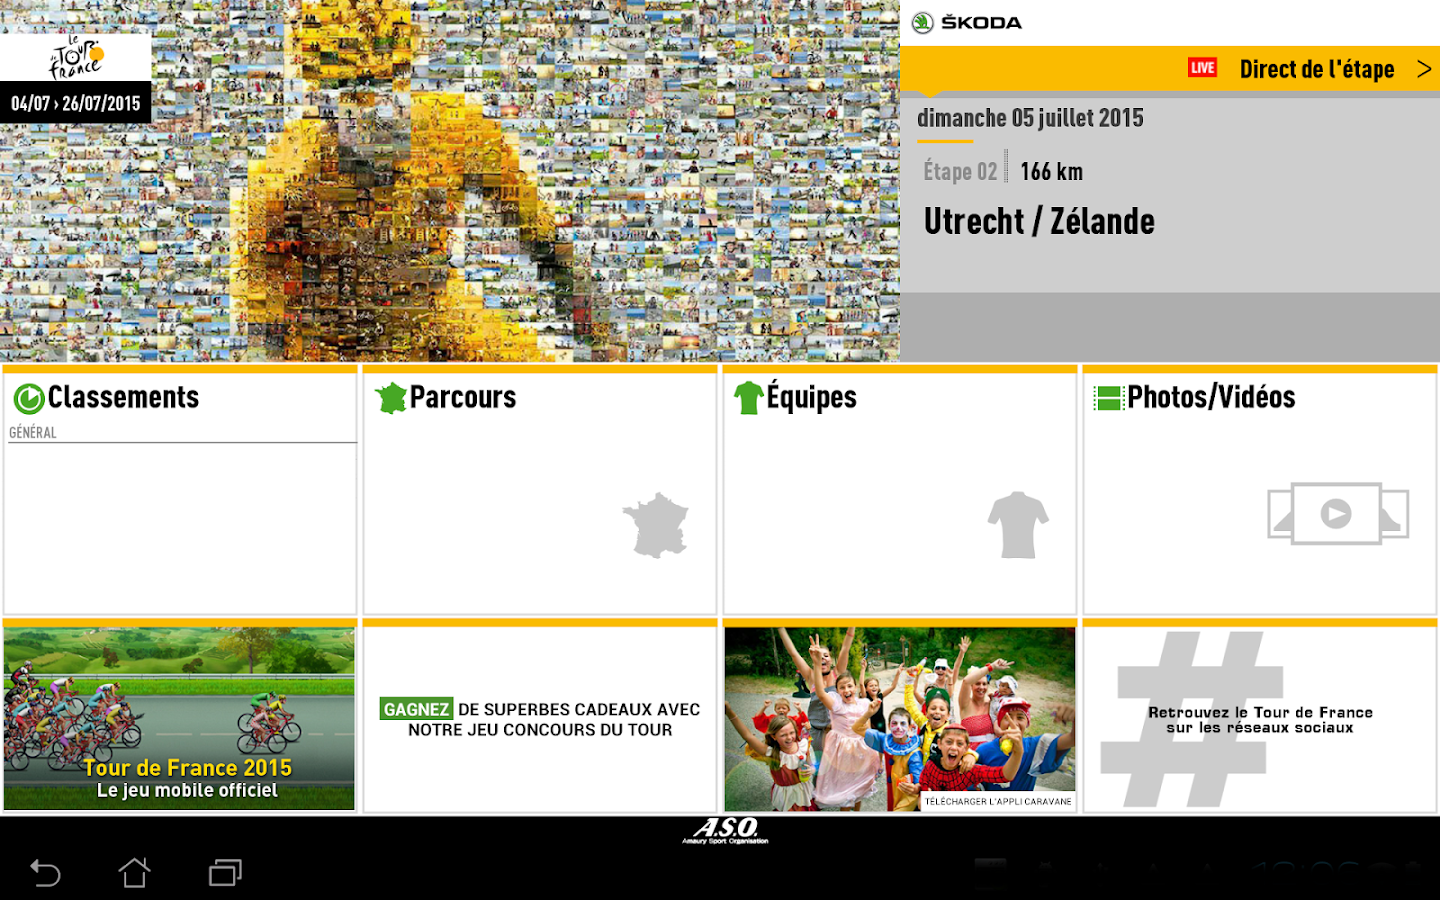 TOUR DE FRANCE 2015 by ŠKODA - screenshot